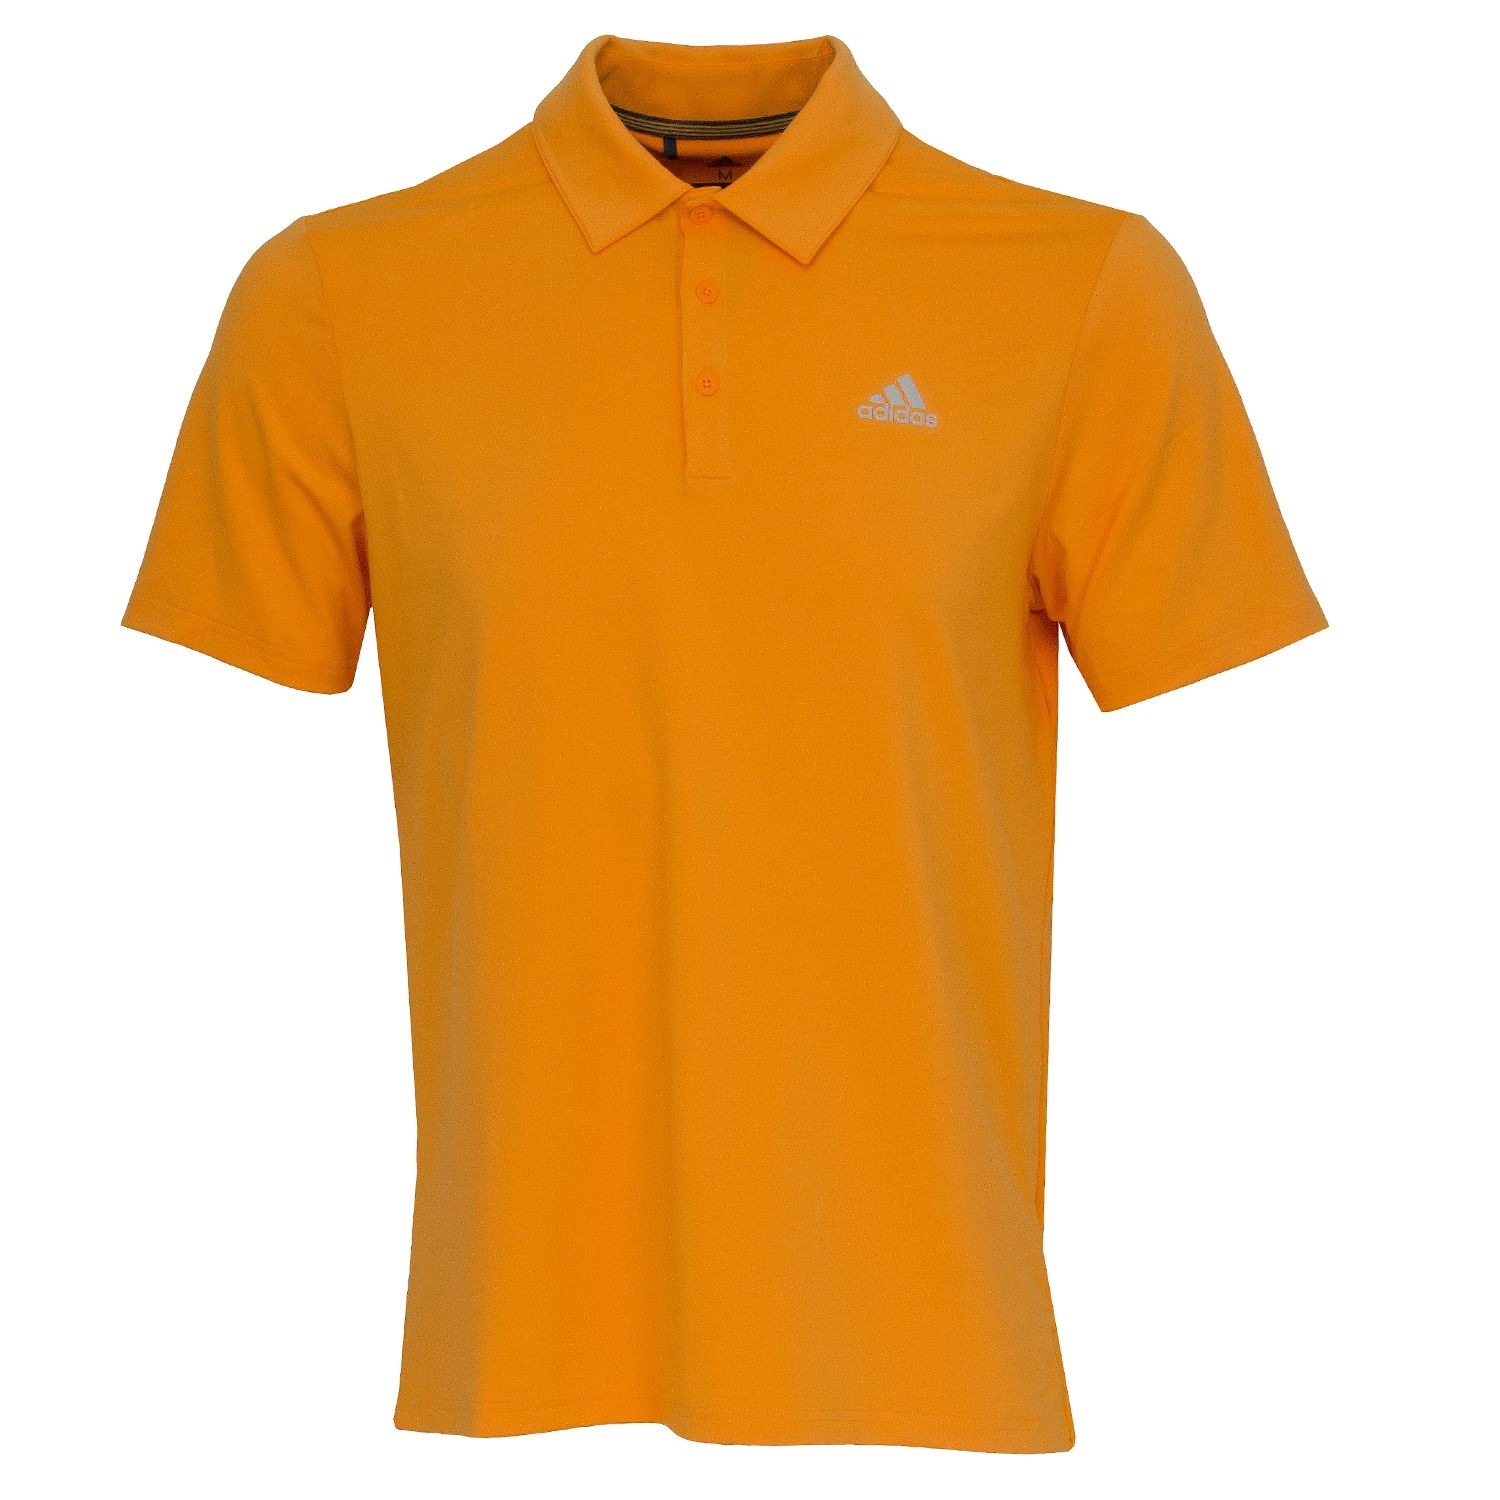 adidas golf polo orange